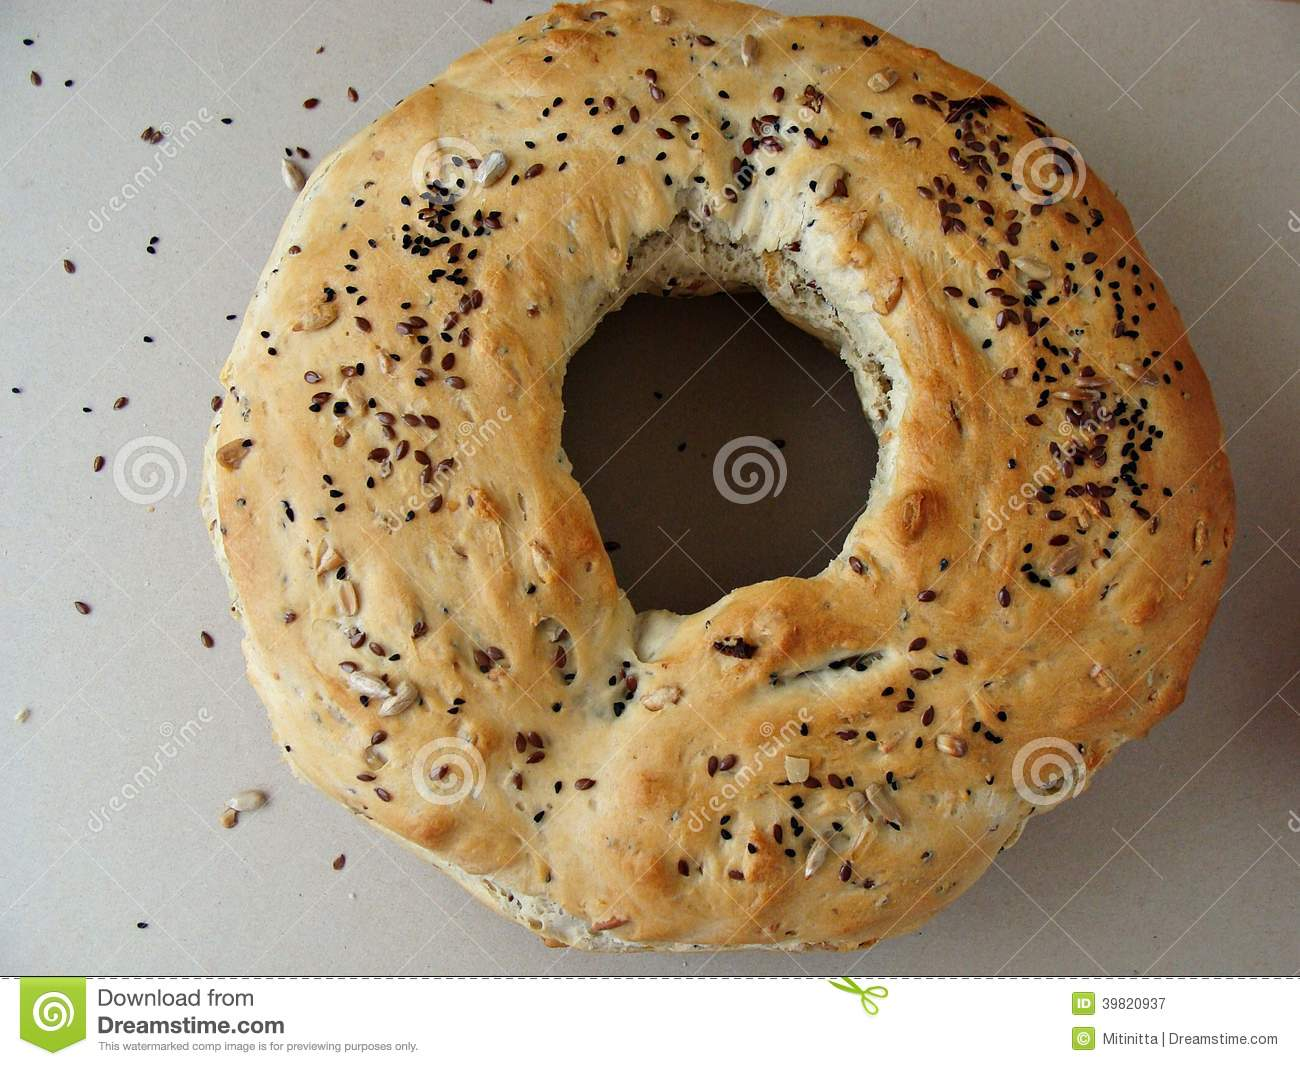 Round Bread With Hole And Seeds Stock Image - Image: 39820937